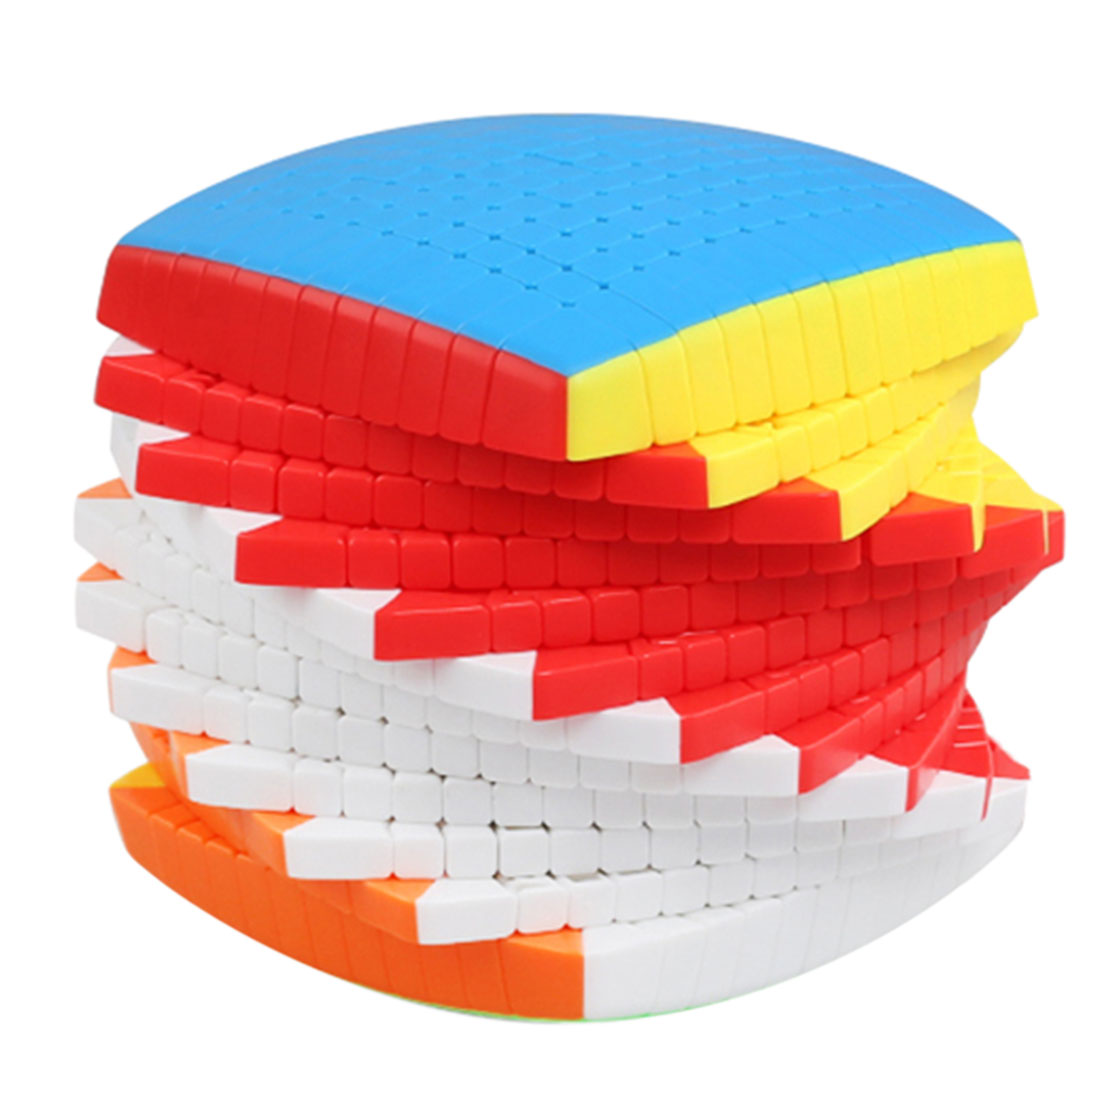 Shengshou 12x12x12 Magic Cube with Present Box for Collection Birthday Gift 2019 Colorful